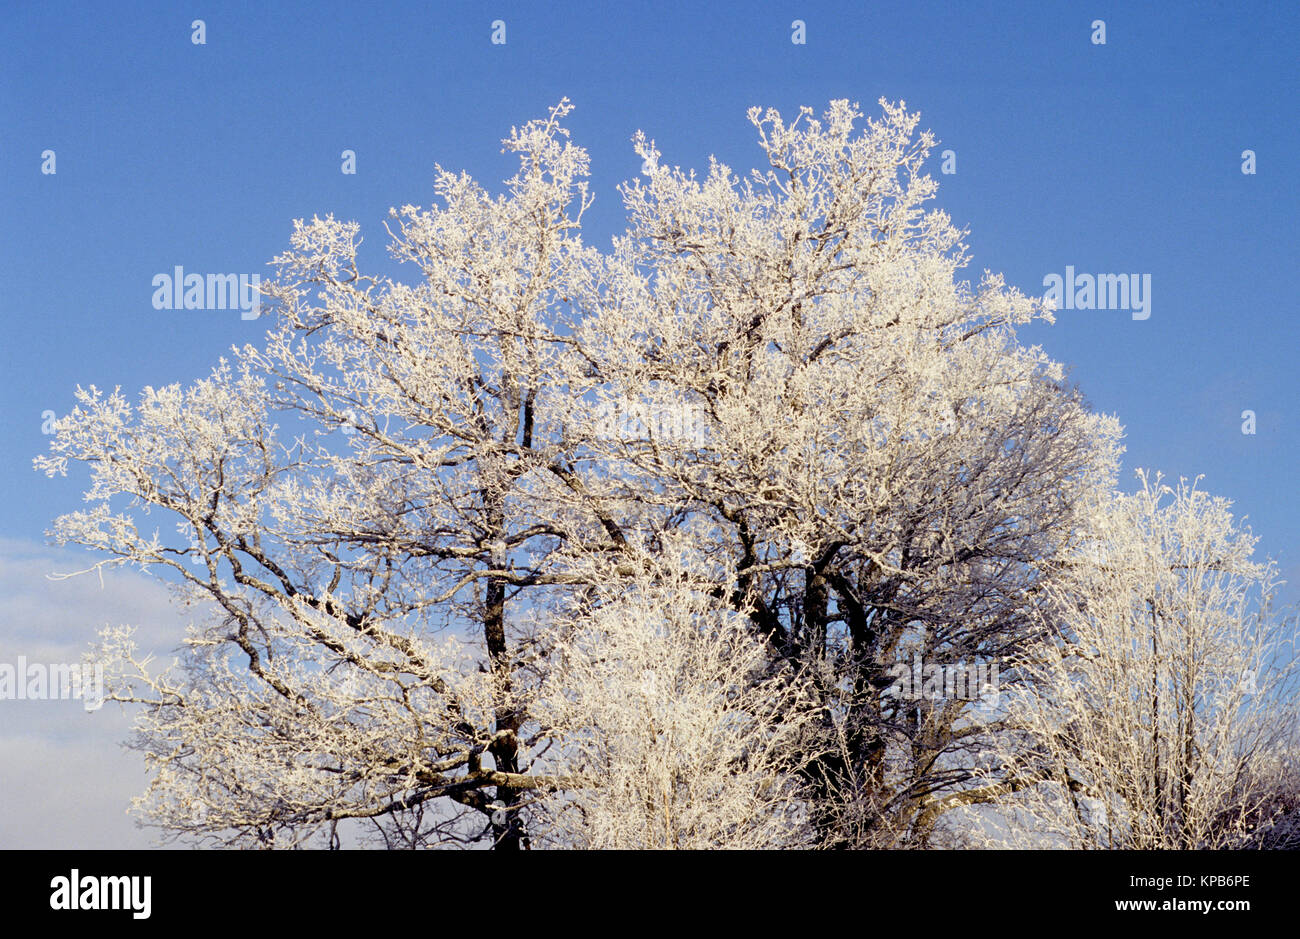 FROSTWORK in tree against winter sky 2016 - Stock Image